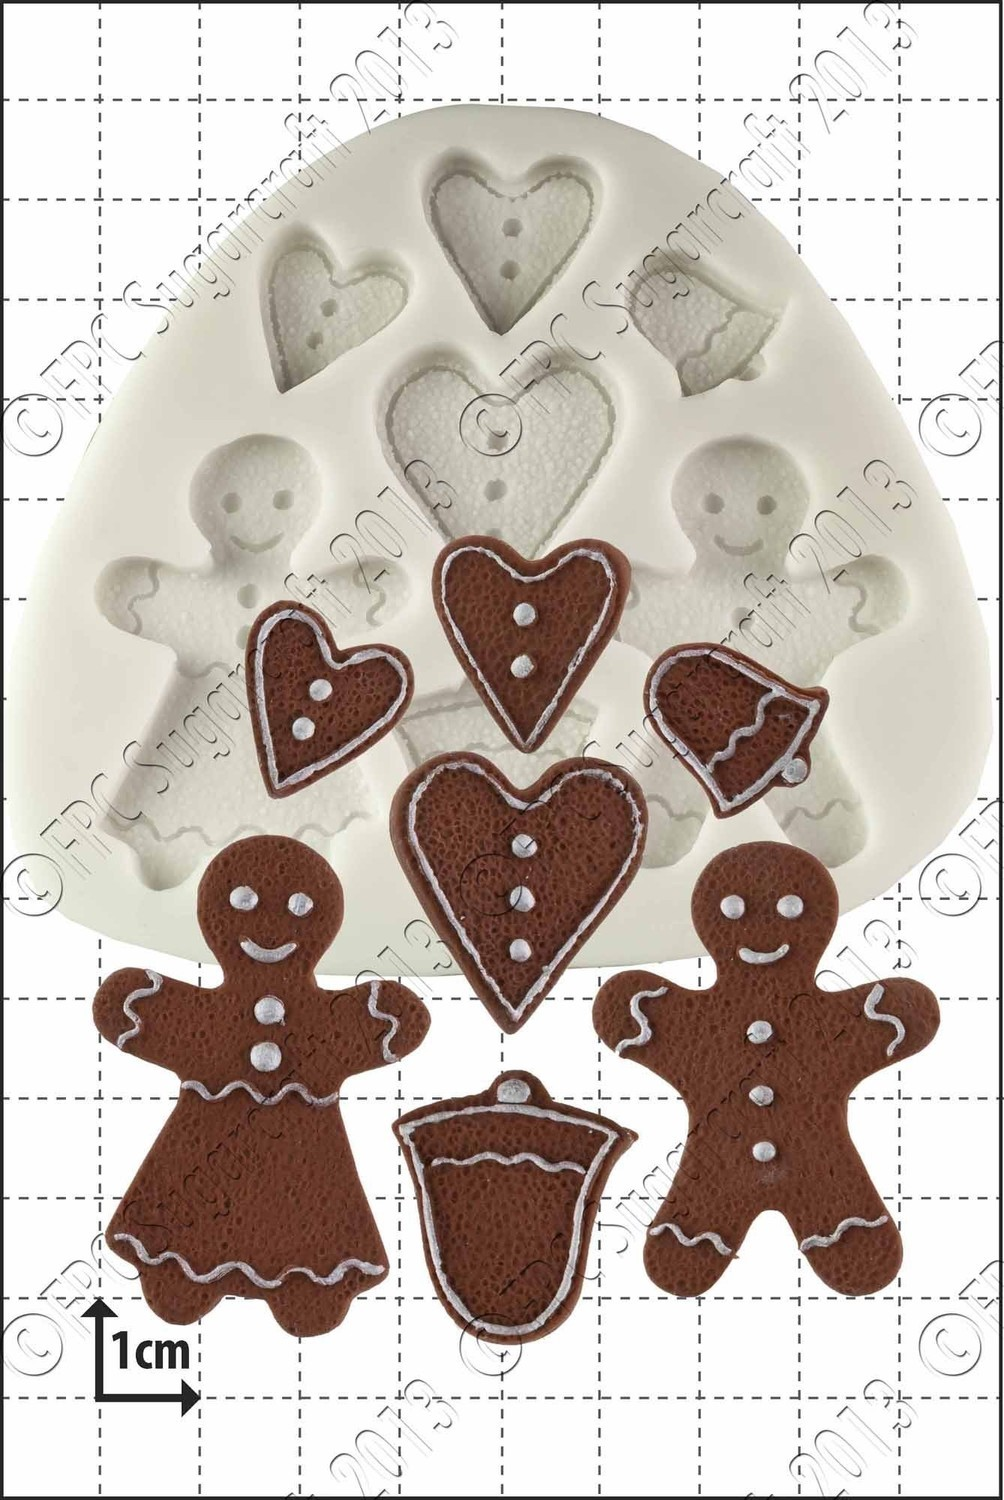 By FPC -Silicone Mould -GINGERBREAD PEOPLE -Καλούπι Μπισκοτένια Ανθρωπάκια